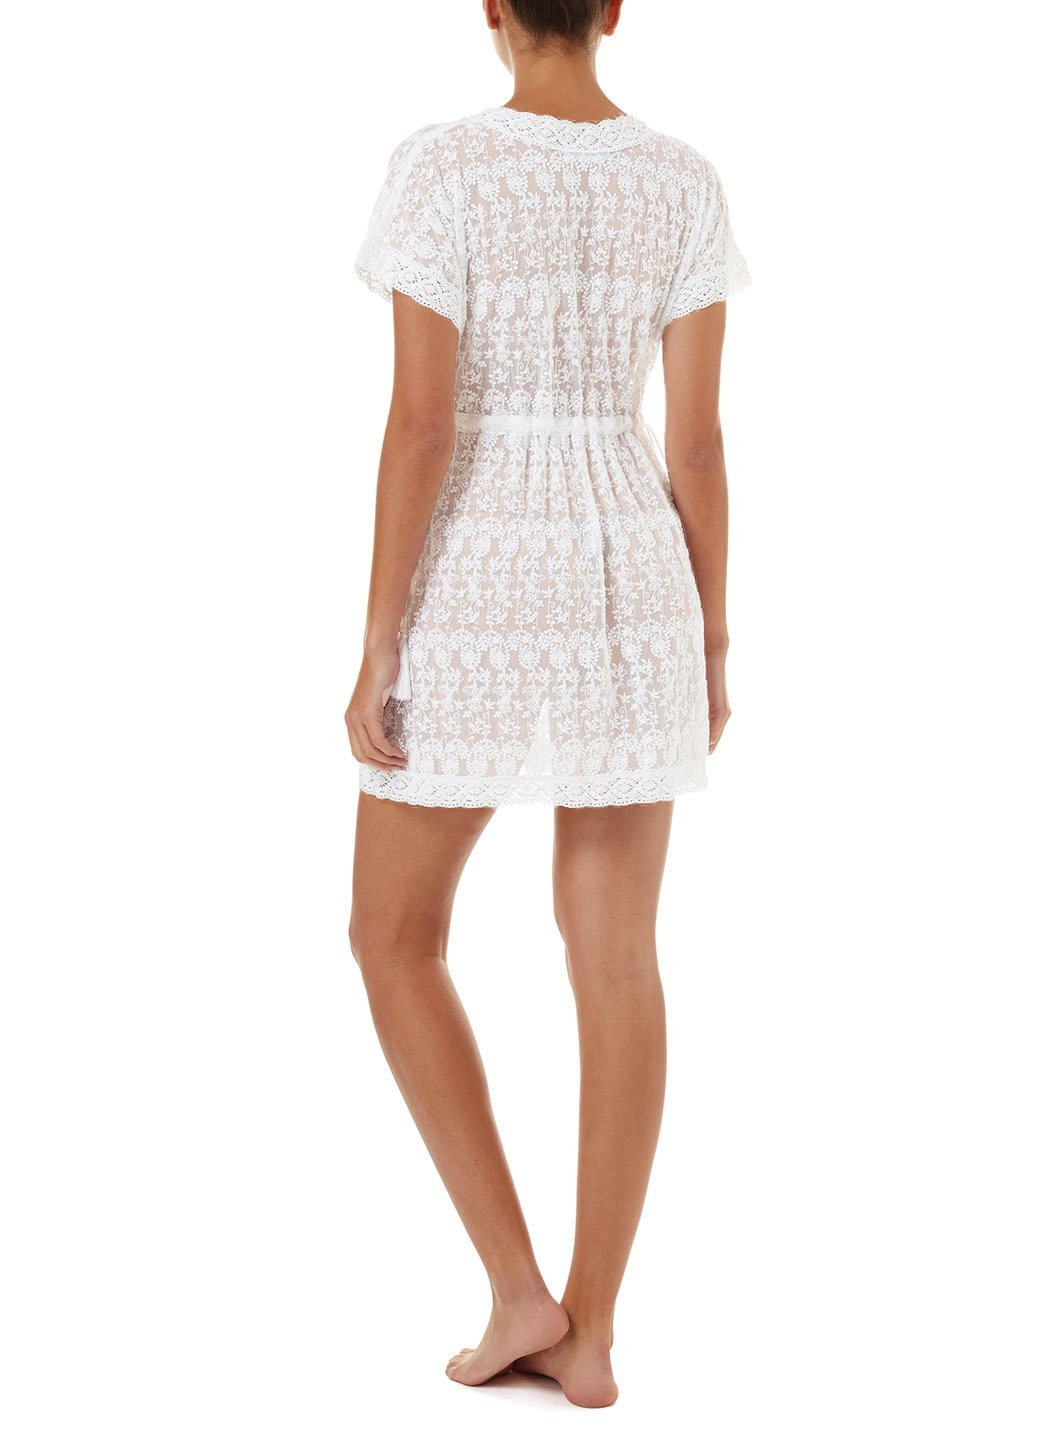 adelina white embroidered short tieside beach dress 2019 B